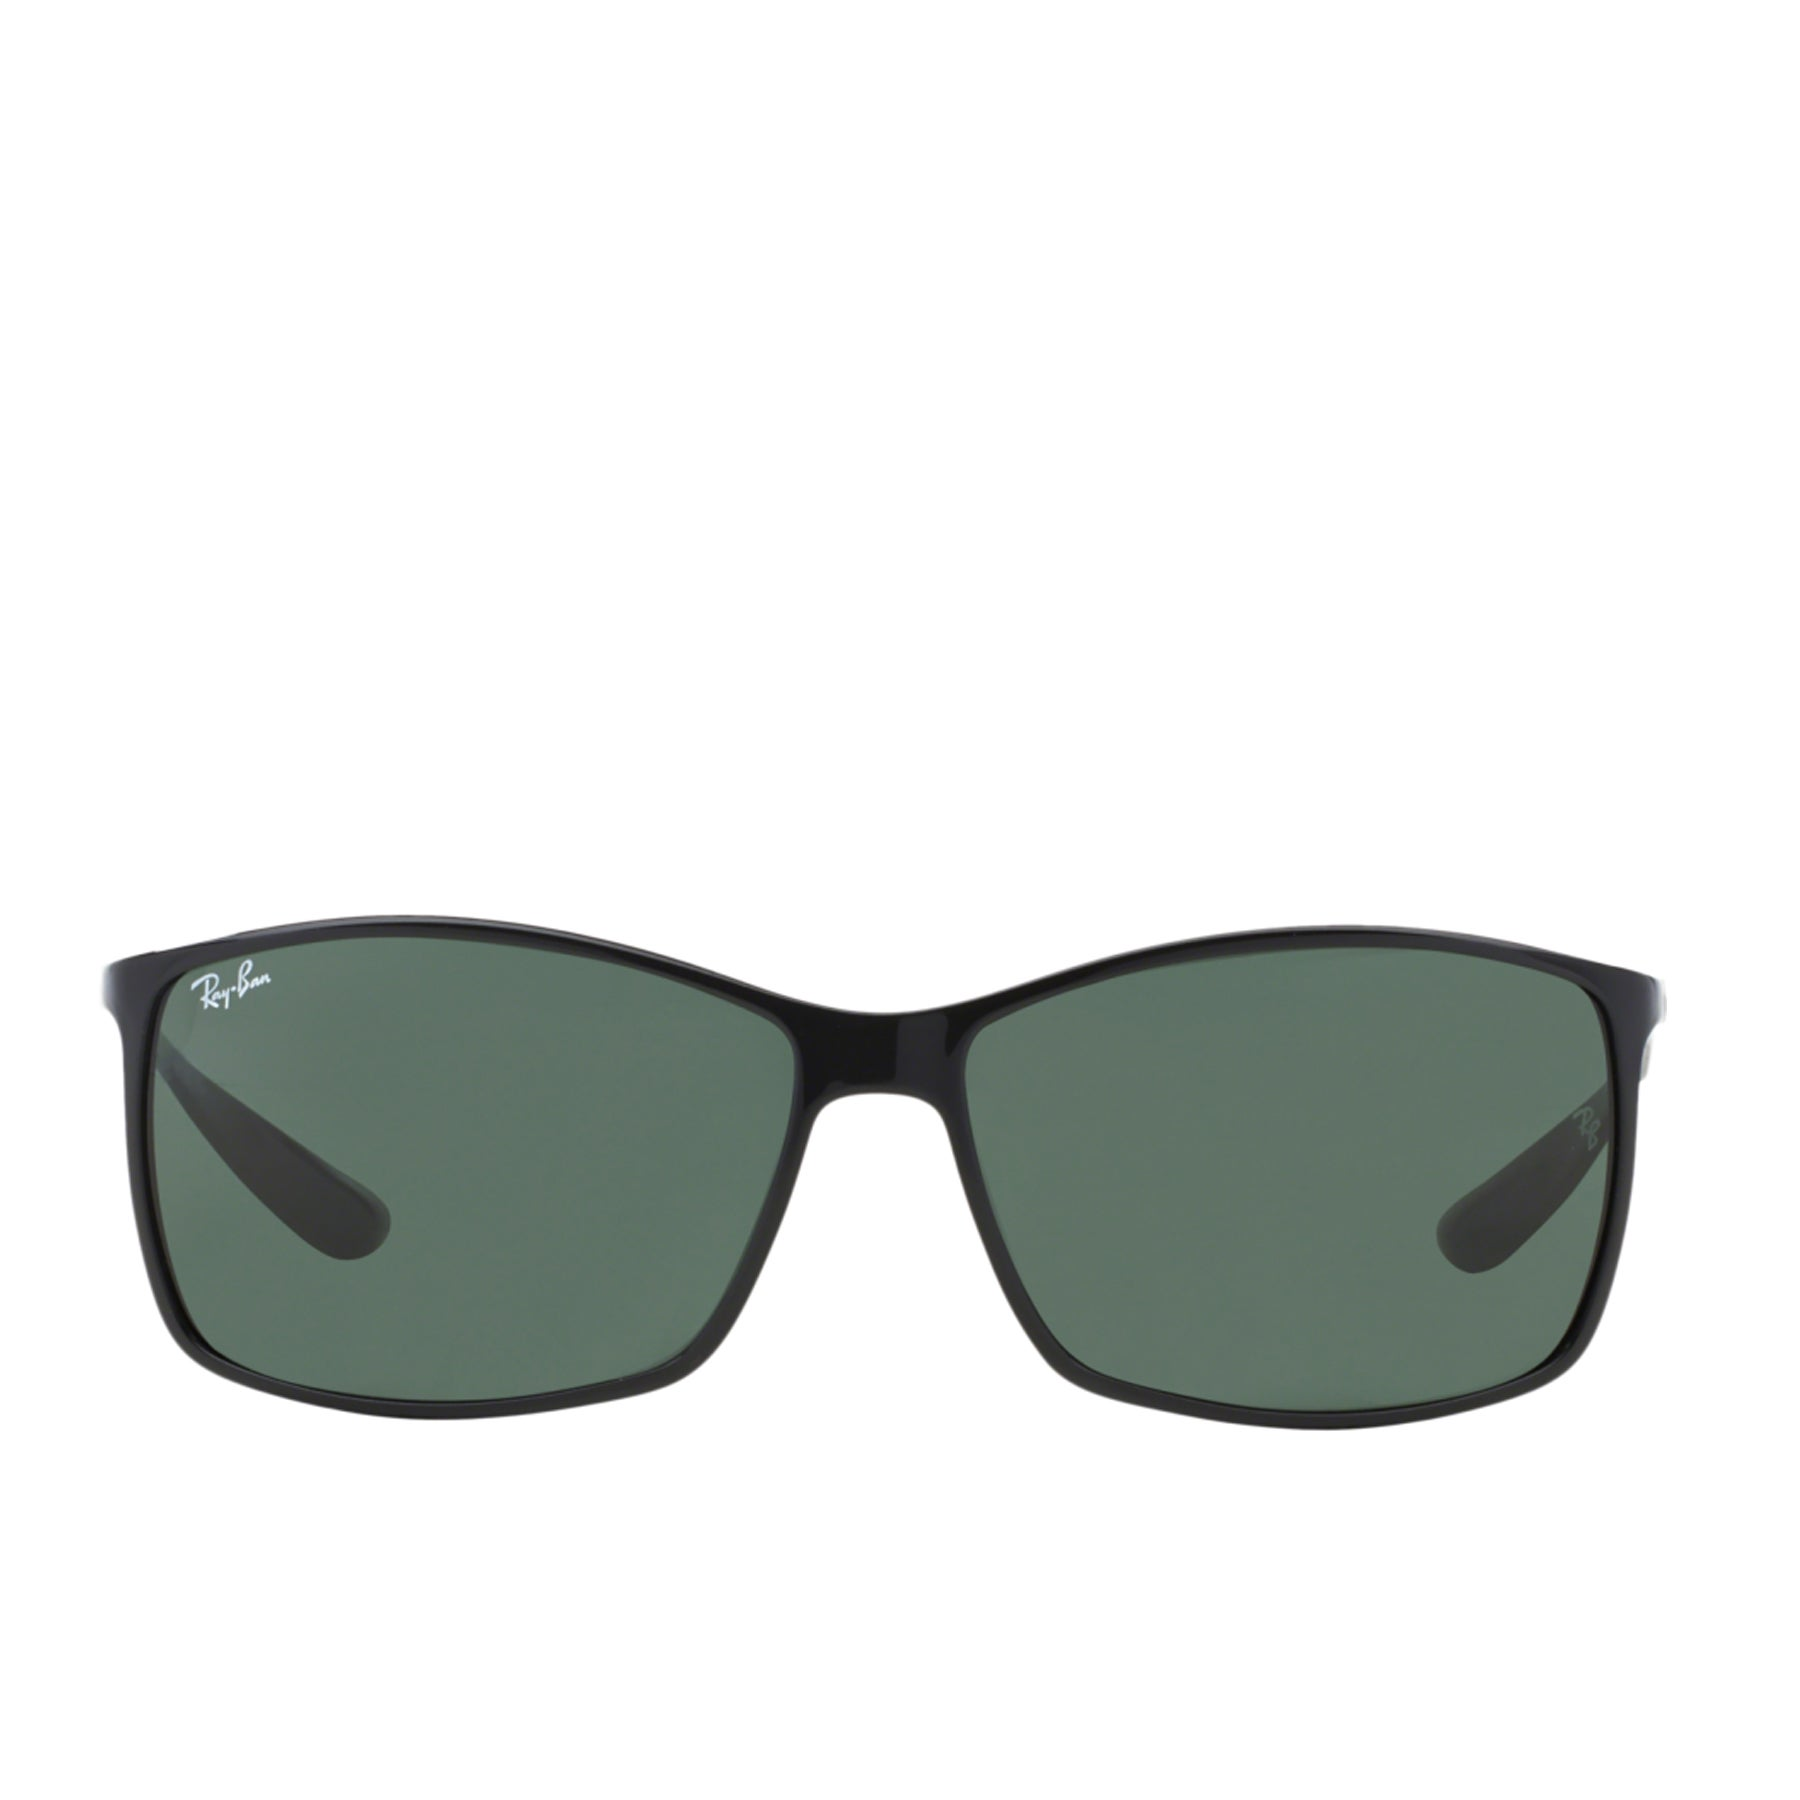 Ray-Ban Liteforce Sunglasses - Polarised   Matte Black Dark Green